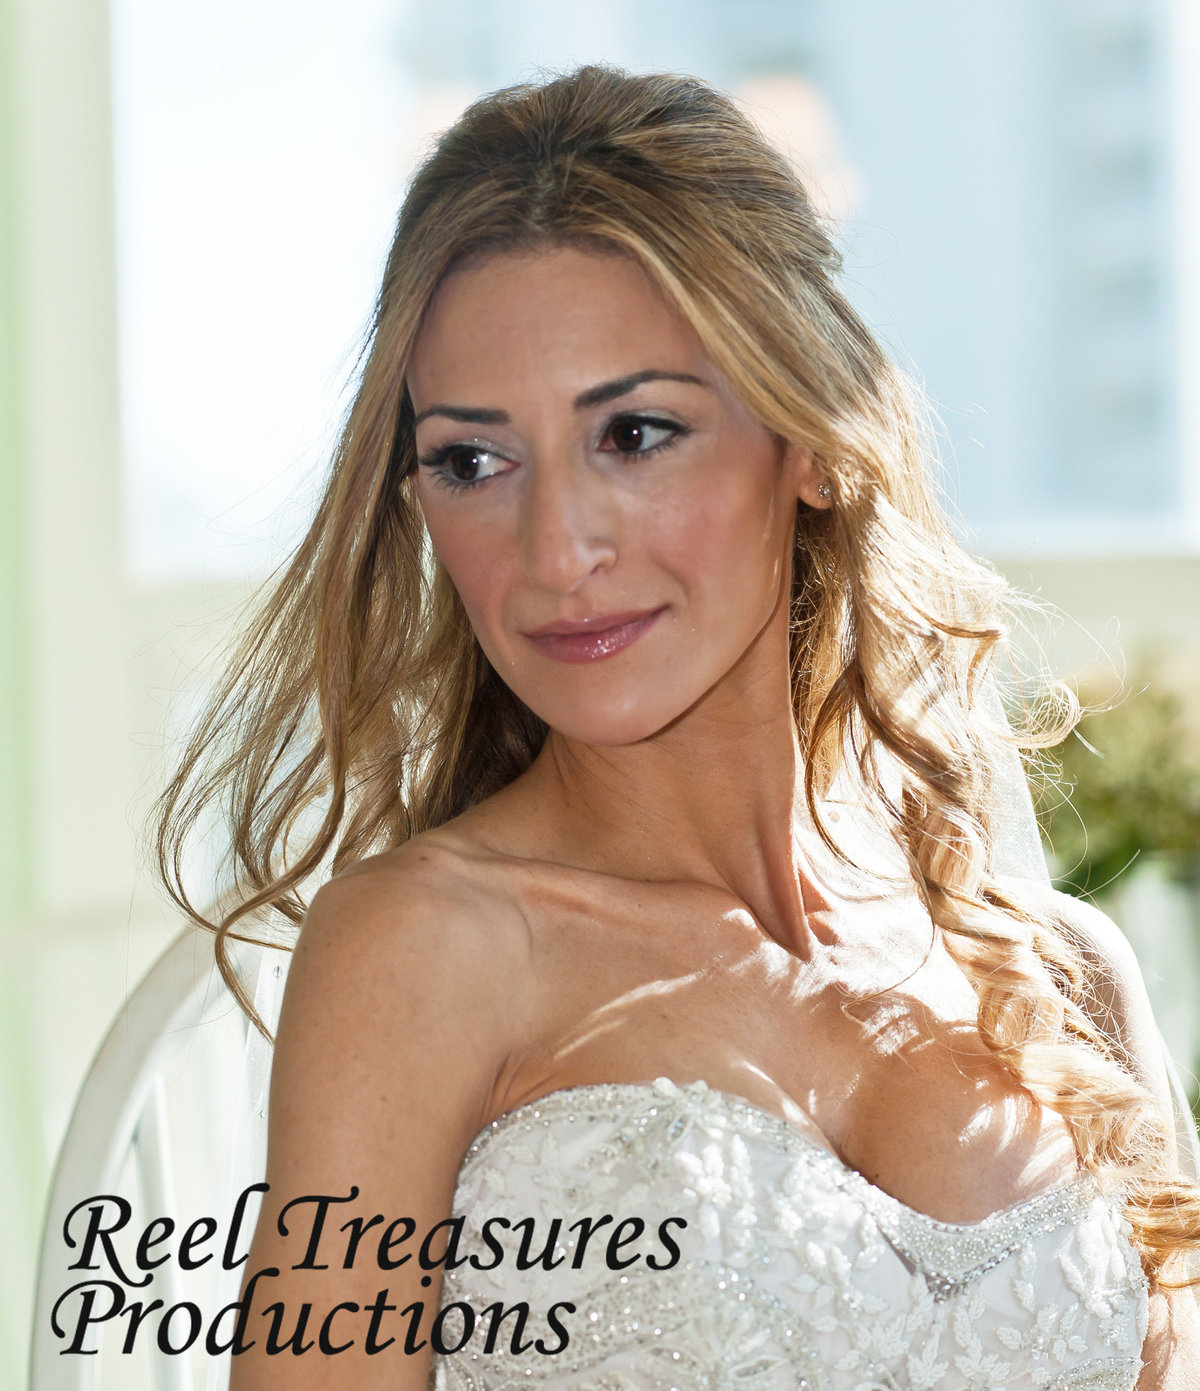 Reel Treasures Productions is an award-winning husband & wife photography and cinematography team based in Naples, Florida.